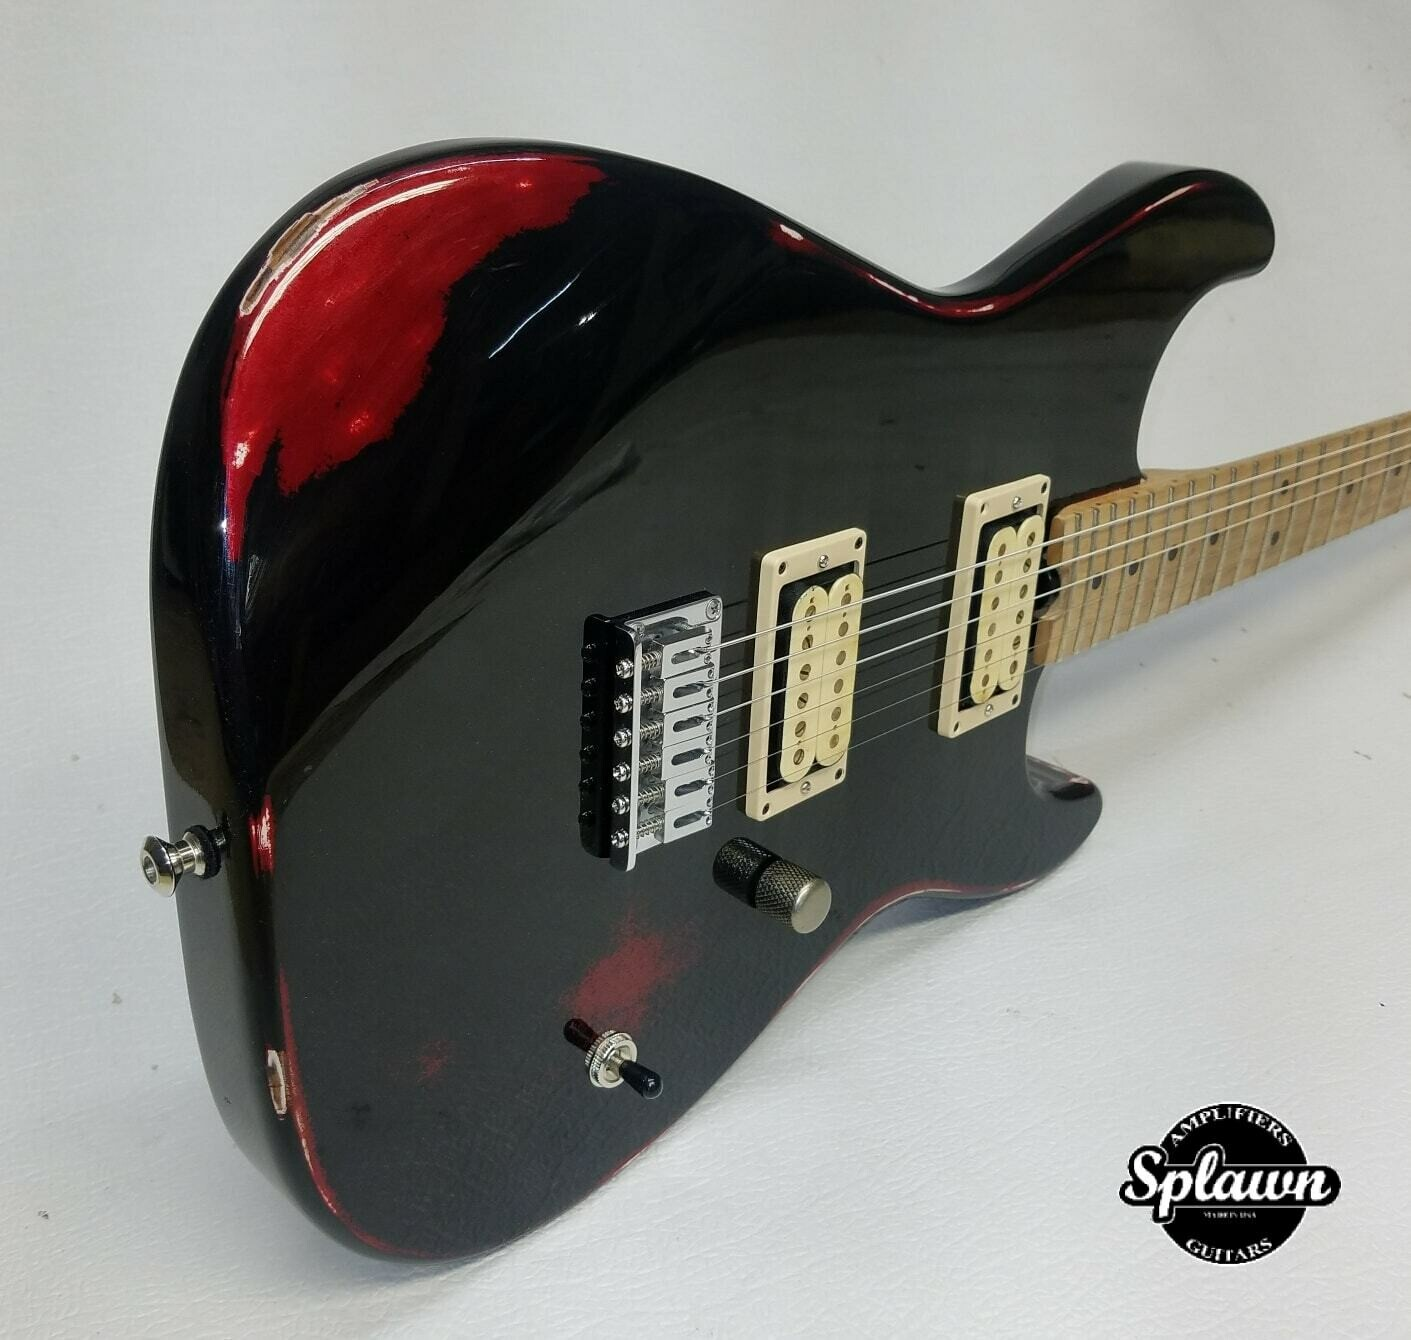 Splawn SS1 Guitar Black over Candy Apple Red Nitro Relic